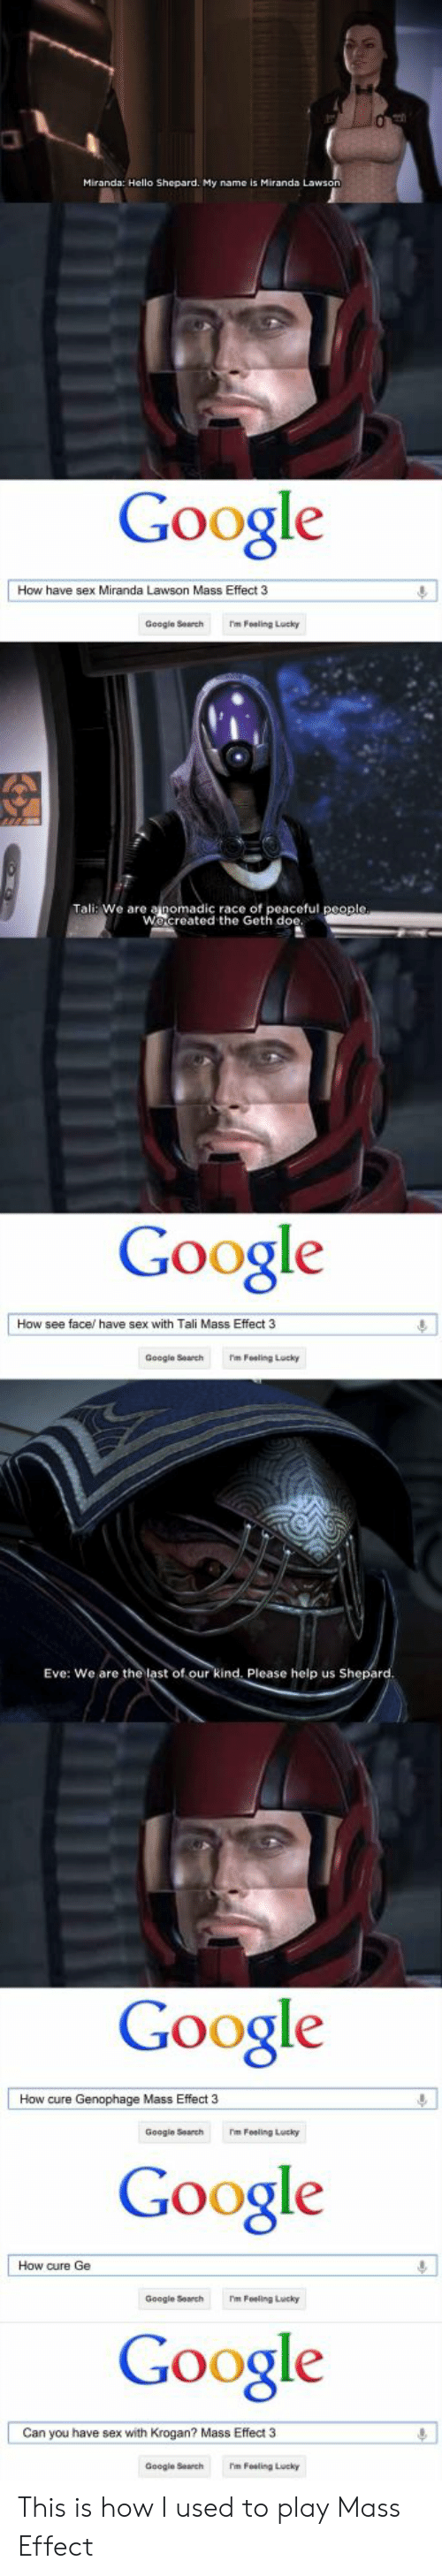 Googie: Miranda: Hello Shepard. My name is Miranda Lawson  Google  How have sex Miranda Lawson Mass Effect 3  Google Search m Foaling Lucky  筑  Tali: We are ainomadic race of  Wecreated the  Google  How see face/have sex with Tali Mass Effect 3  Google Sech m Foaling Lucky  Eve: We are the last of  kind. Please help us Sh  Google  Google  Google  How cure Genophage Mass Effect 3  Googie 3earchm Feeling Lucky  How cure Ge  Google SarchmFealing Lucky  Can you have sex with Krogan? Mass Effect 3  Google Sechm Fosling Lucky This is how I used to play Mass Effect